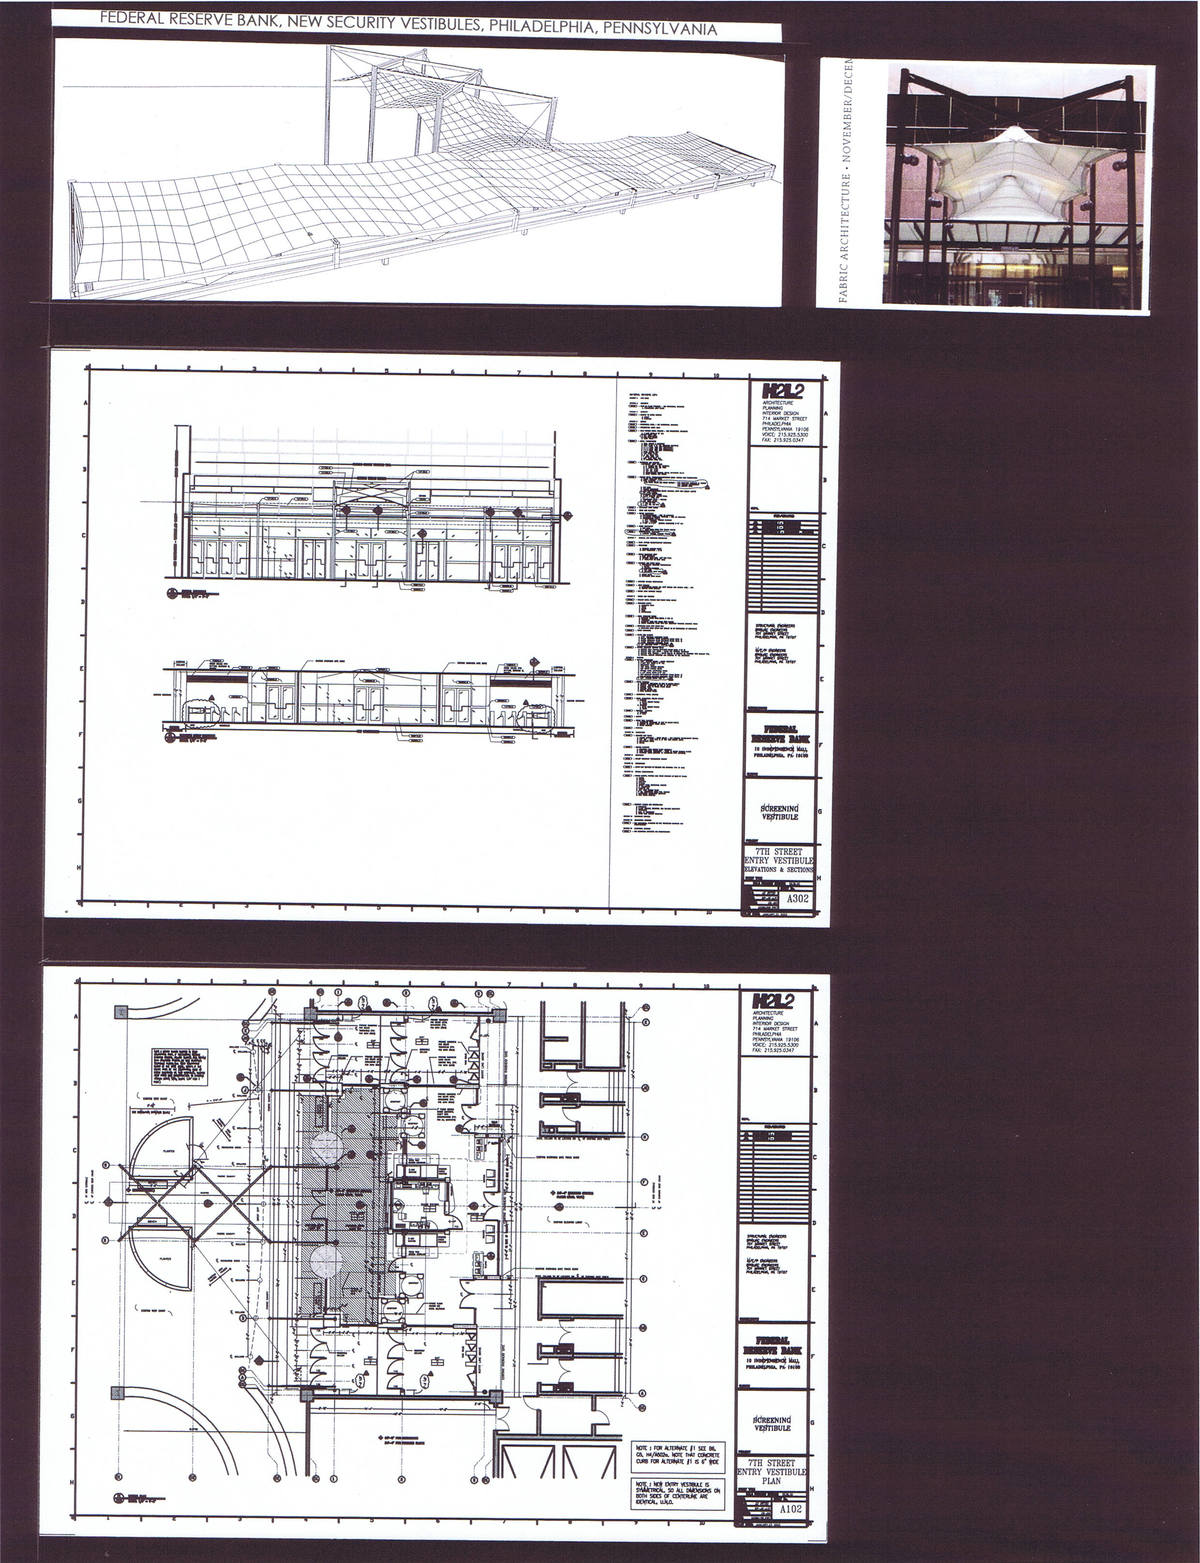 7th Street Entry Vestibule, Canopy Study, Elevation, Section, Floor Plan